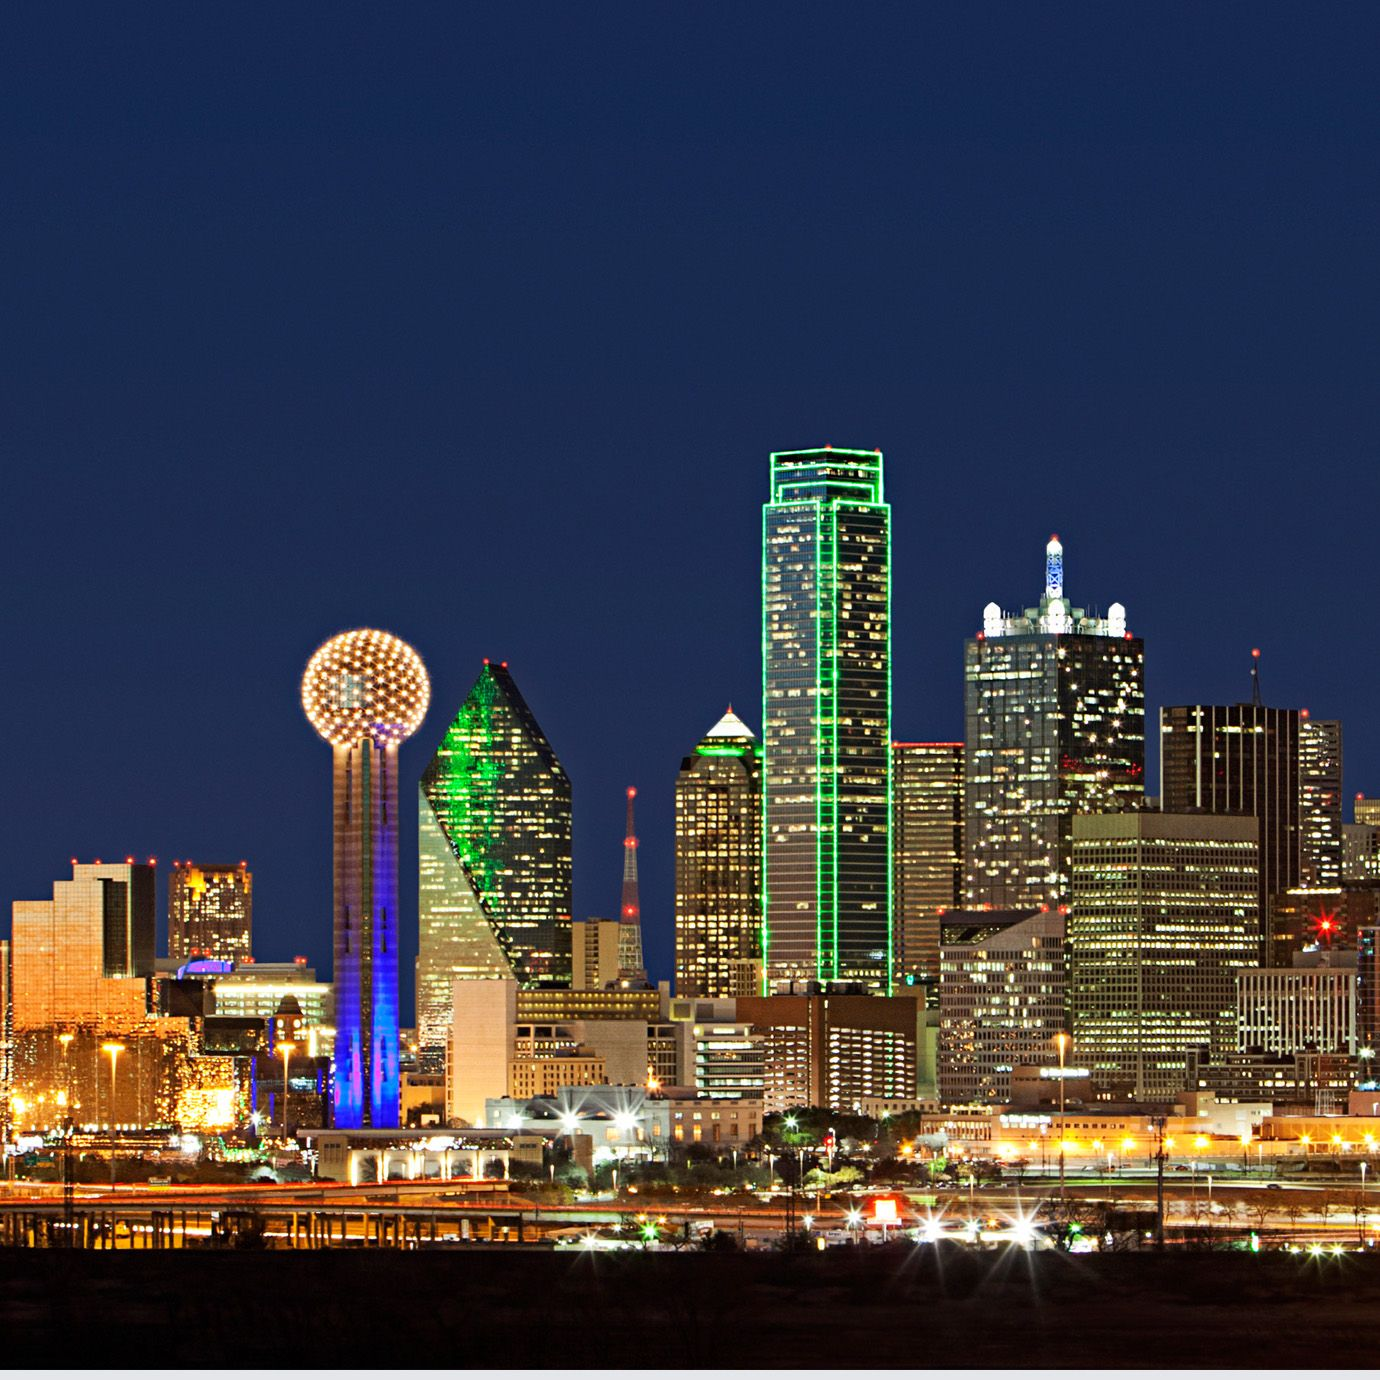 Dallas Skyline Wallpaper | Leaders in Global Real Estate | Dallas | Pinterest | Dallas city ...